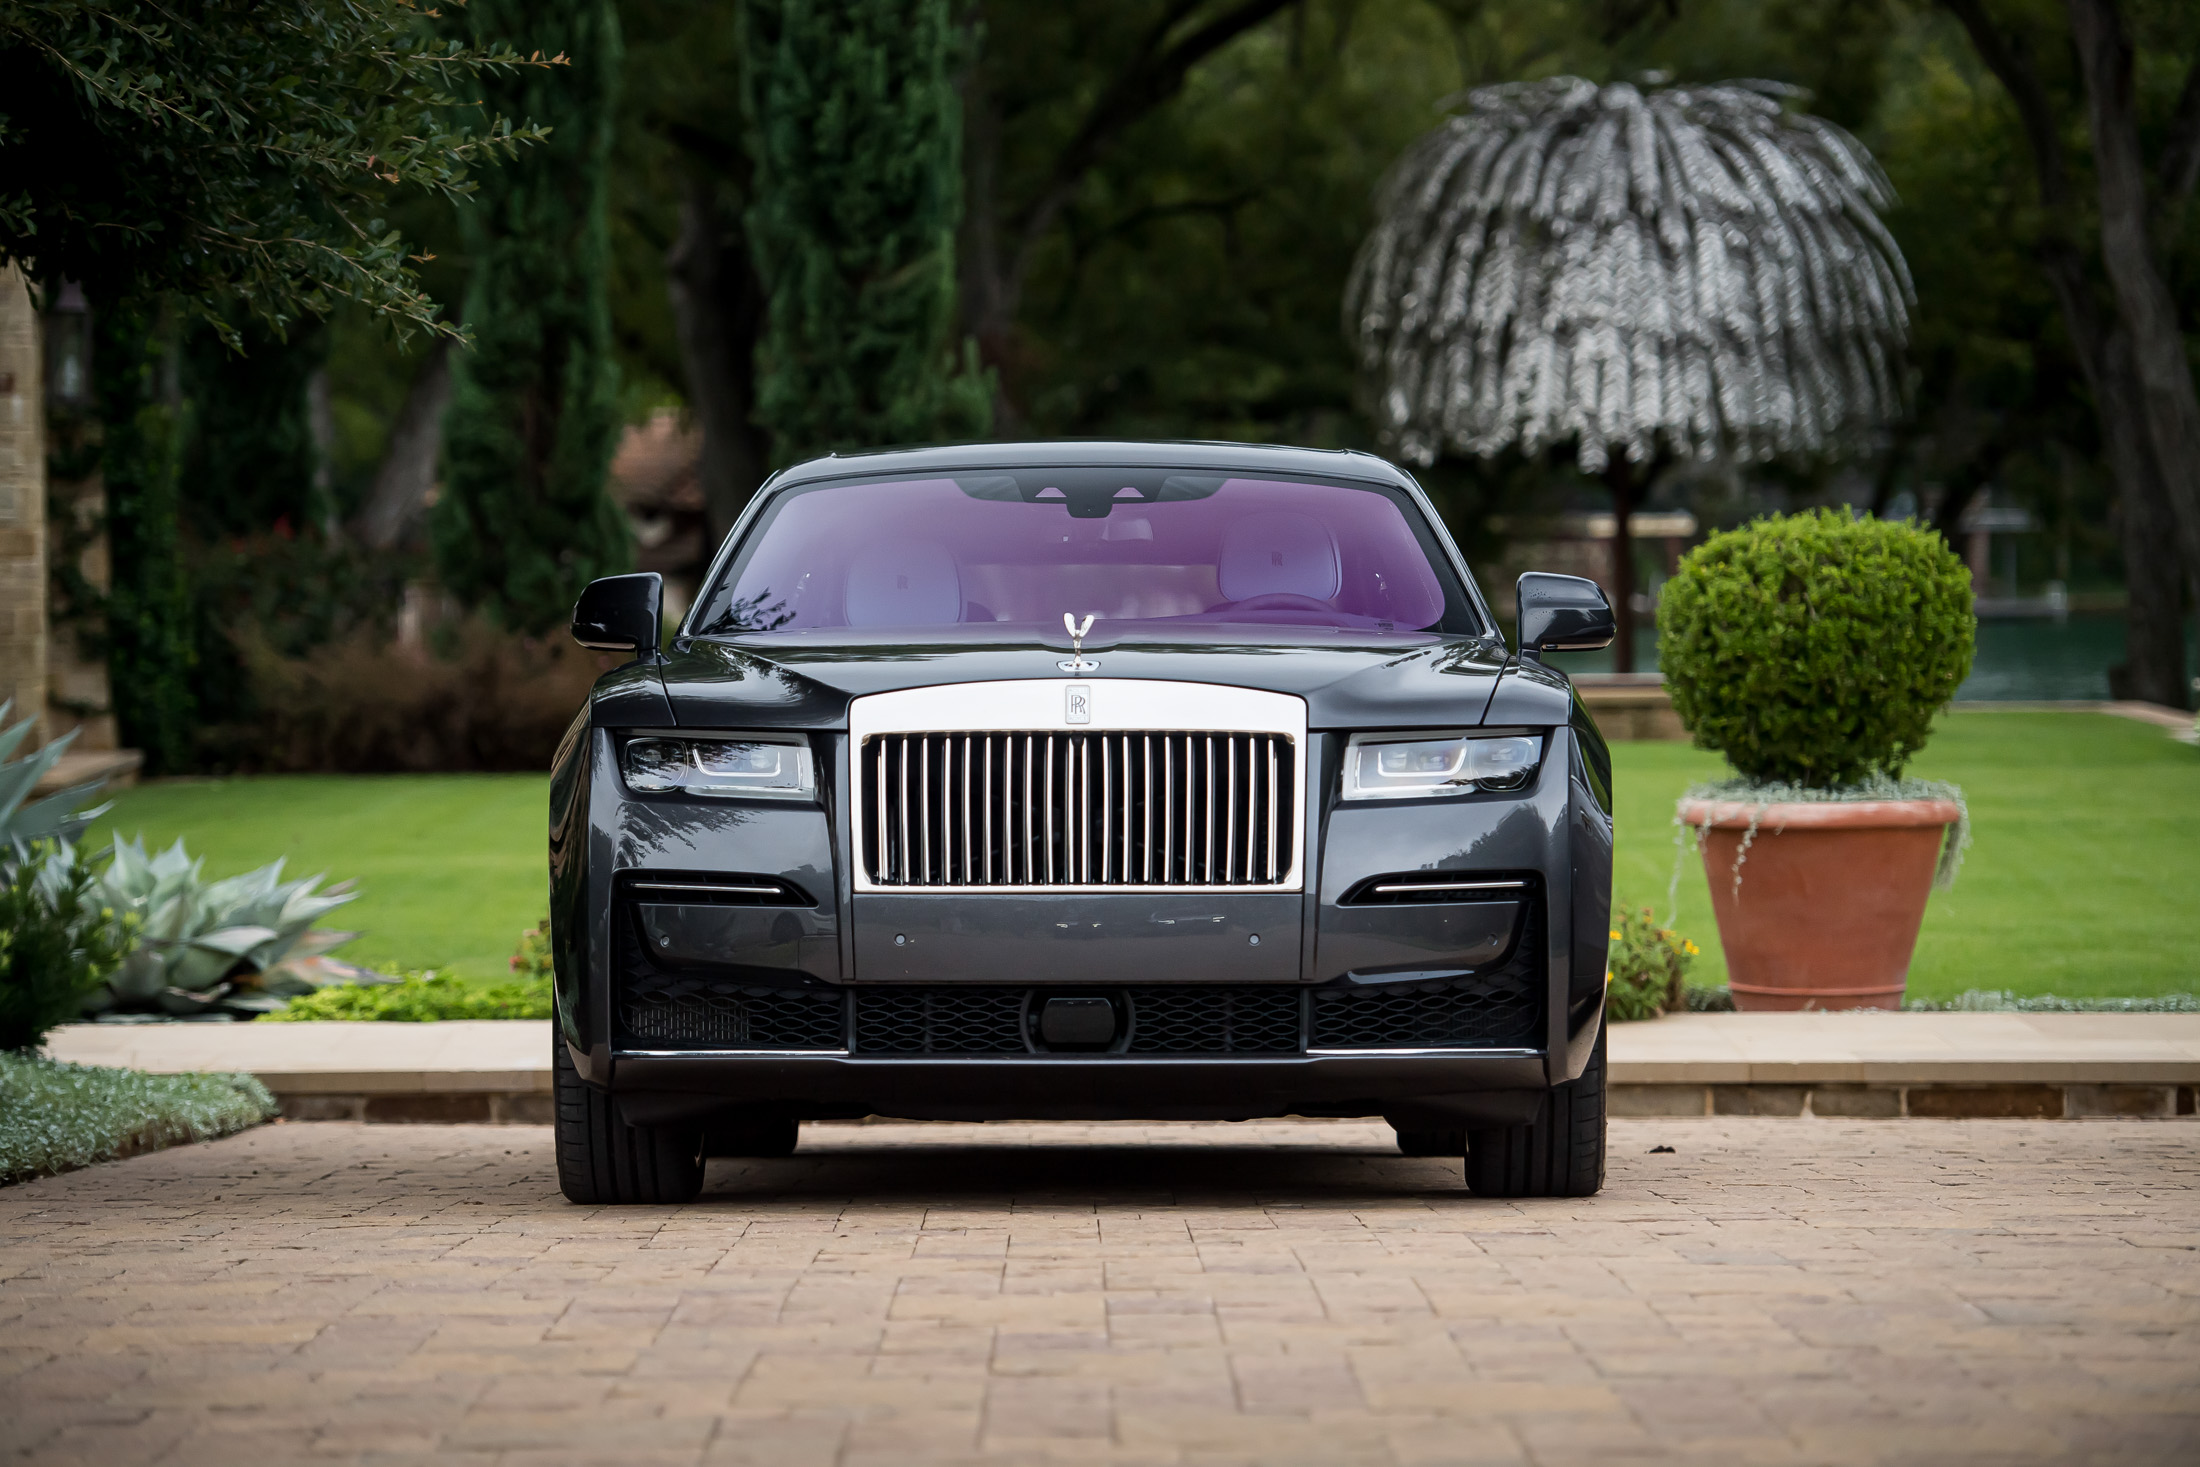 relates to Wealth Migration Spurs a Record-Setting Quarter for Rolls-Royce